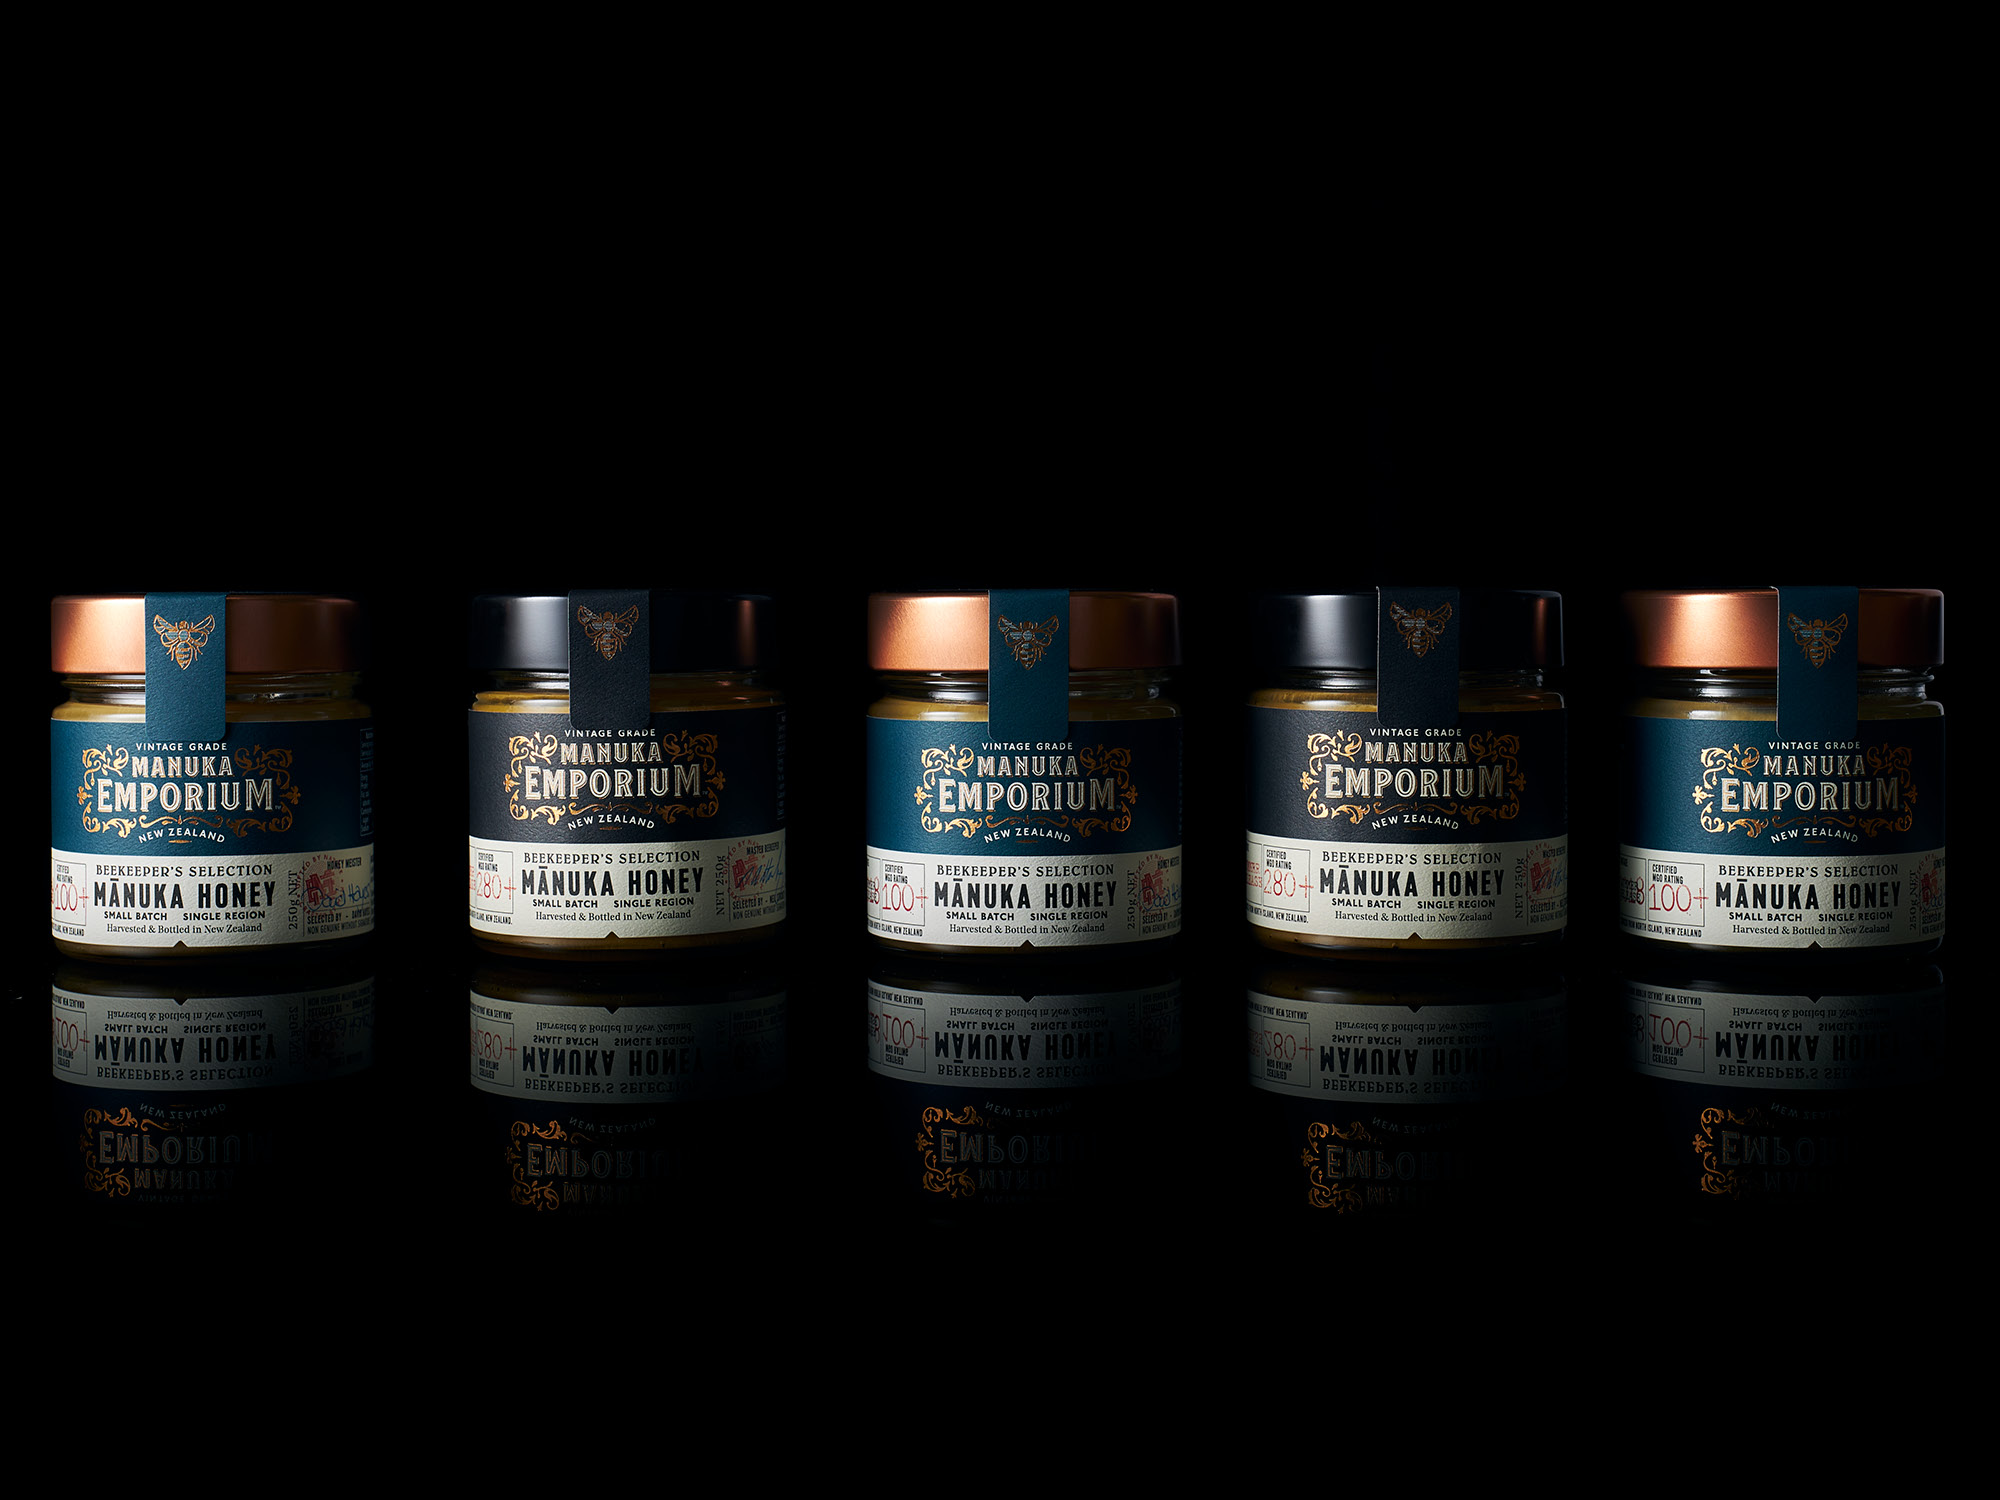 Onfire Design Manuka Emporium Honey Packaging Branding Design 20